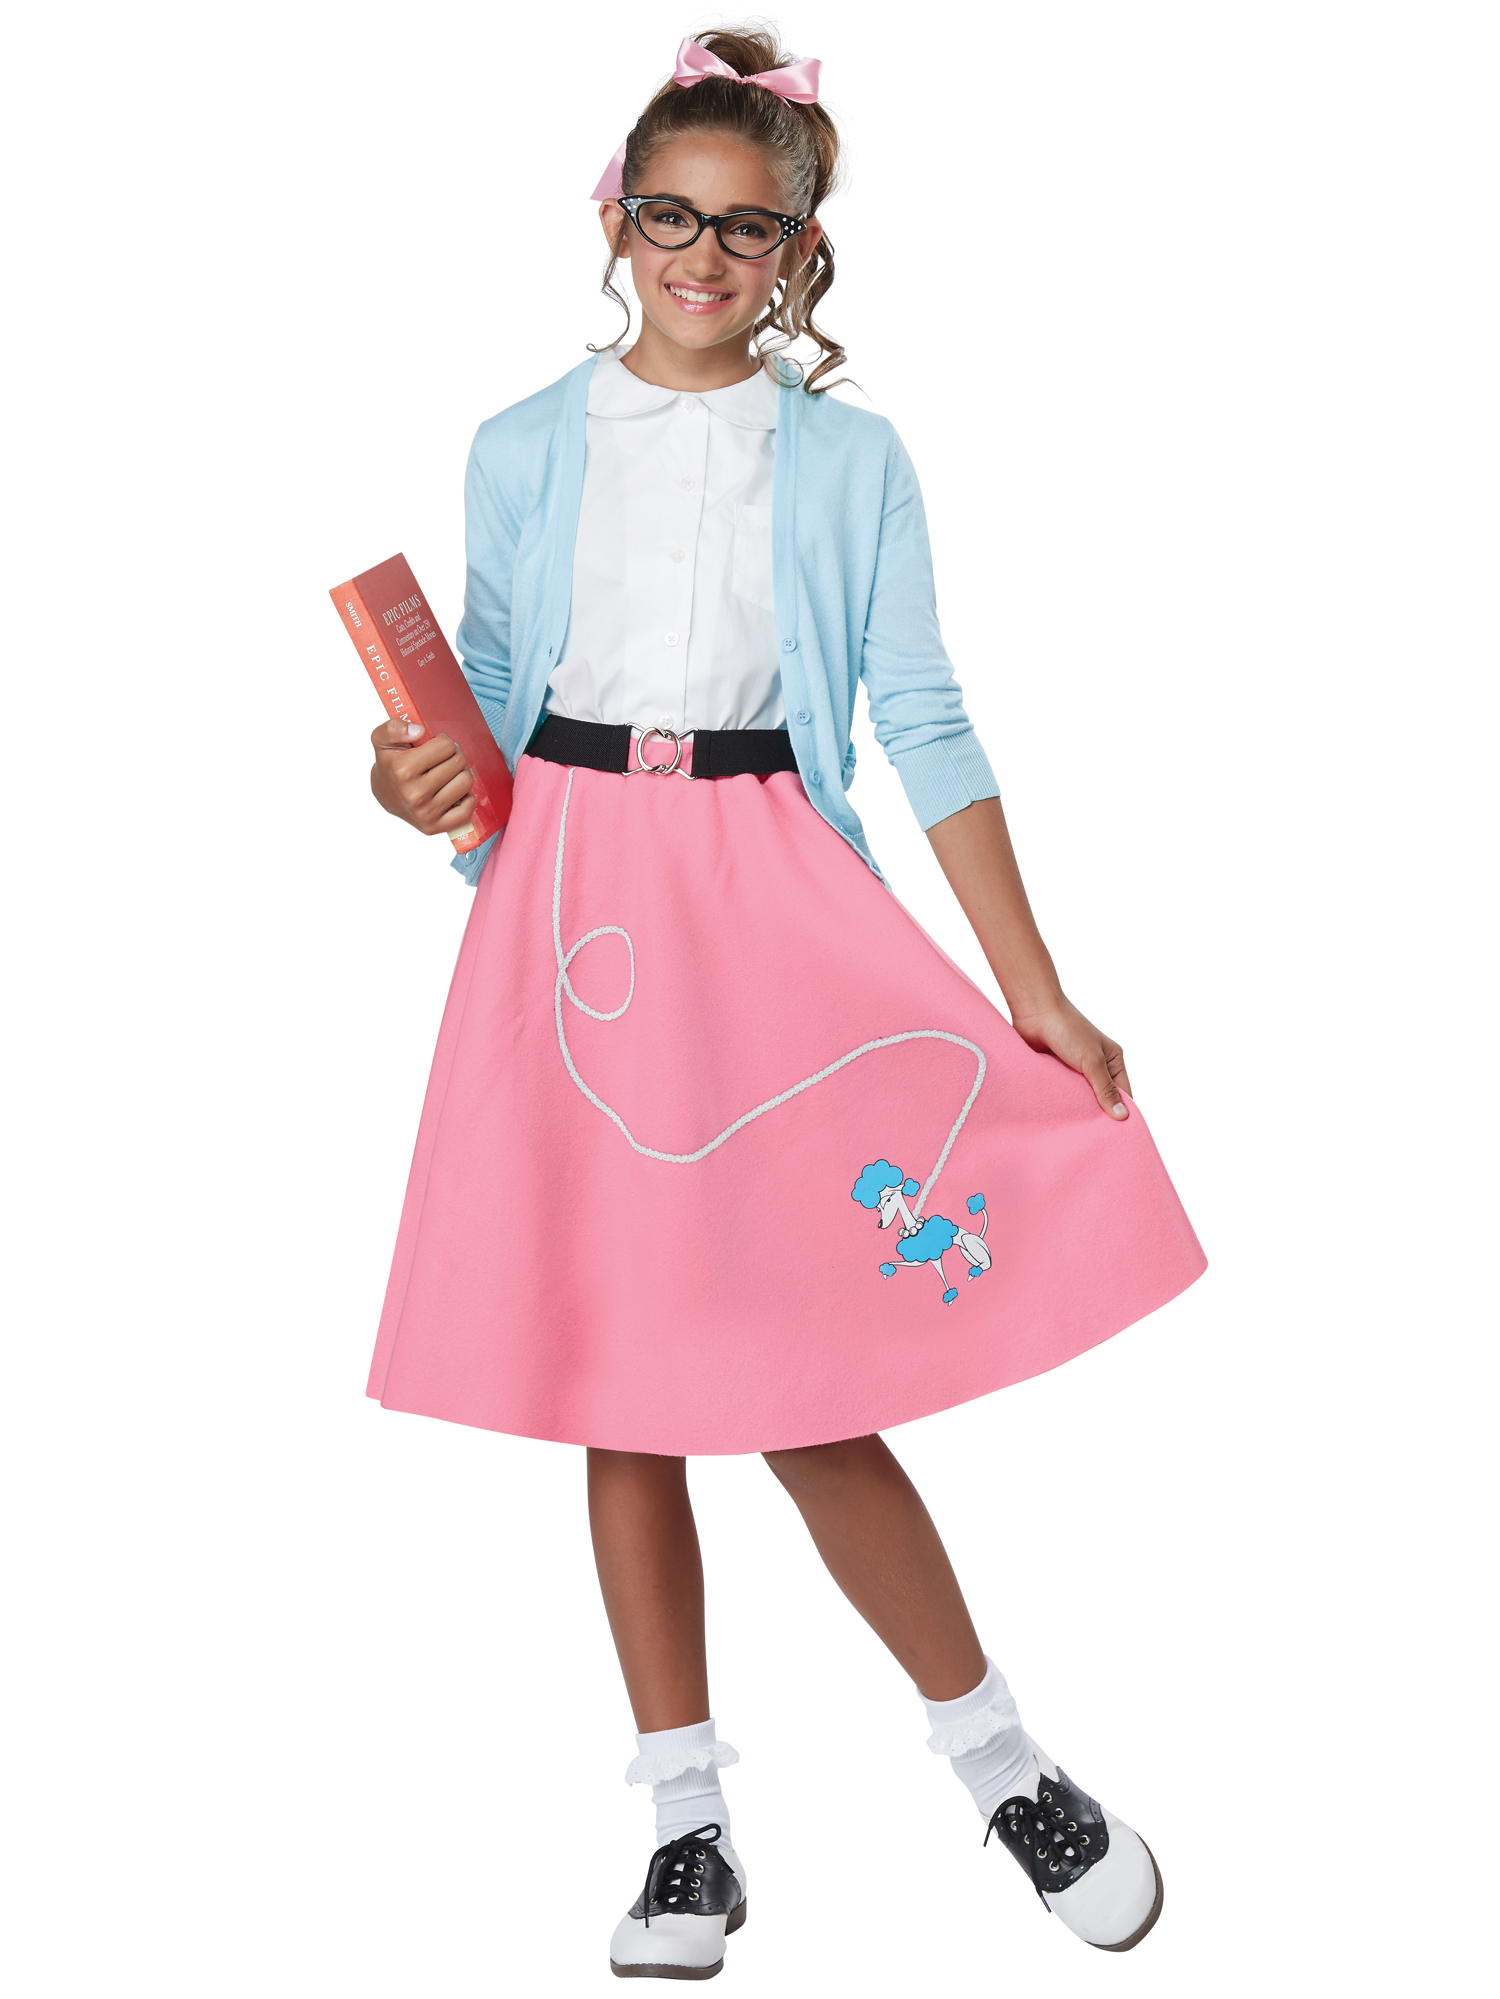 99c5e568e3 50s Grease Rock N Roll 1950s Sock Hop Retro Girls Costume Pink Poodle Skirt  XS